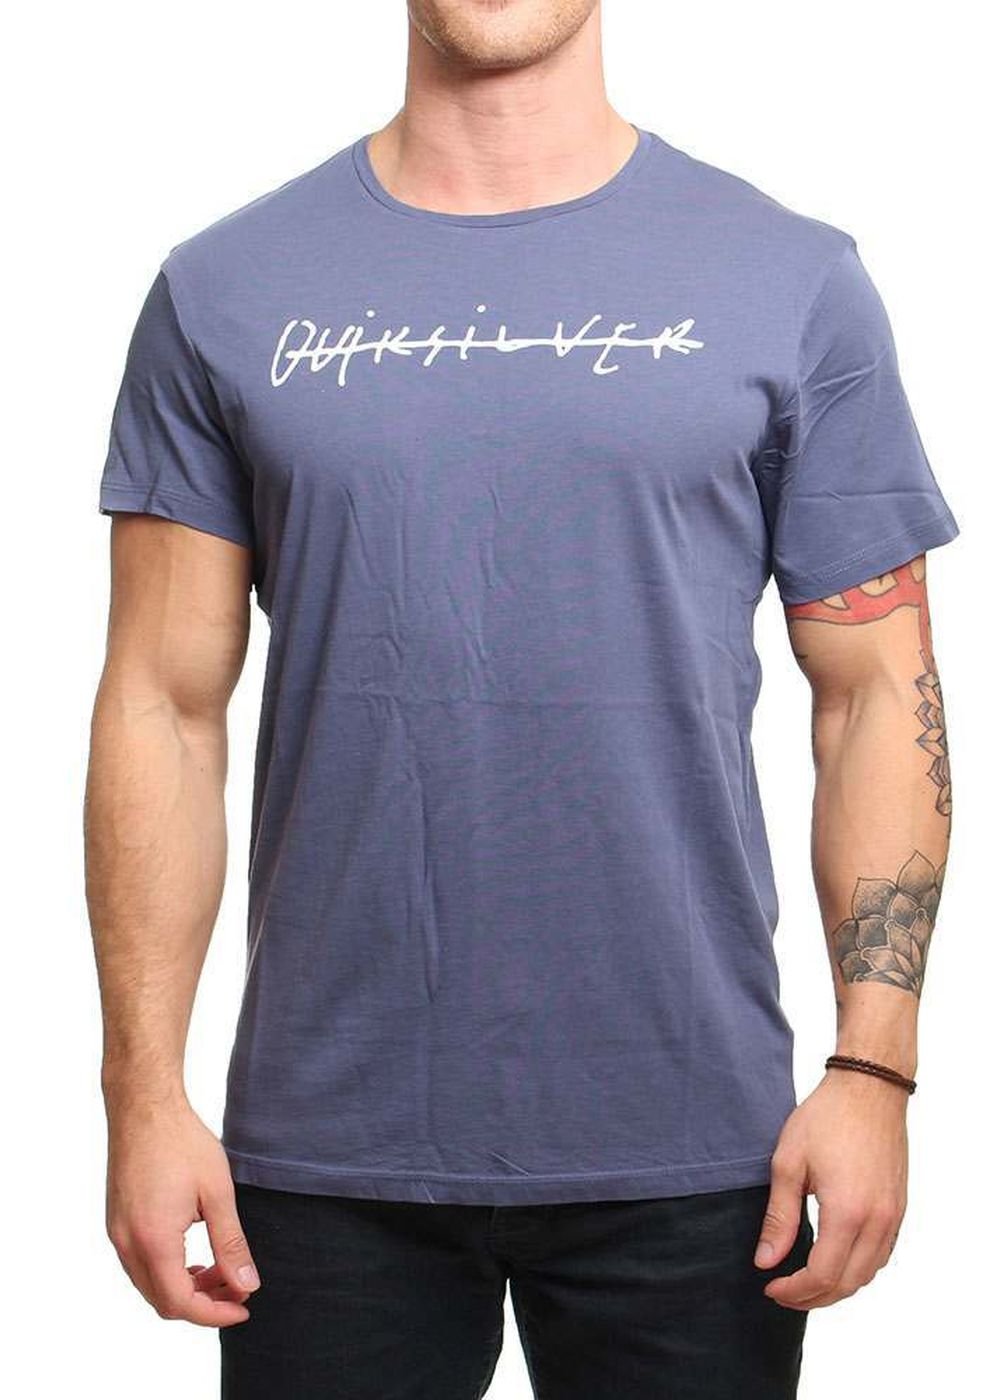 quiksilver-logo-signature-tee-nightshadow-blue